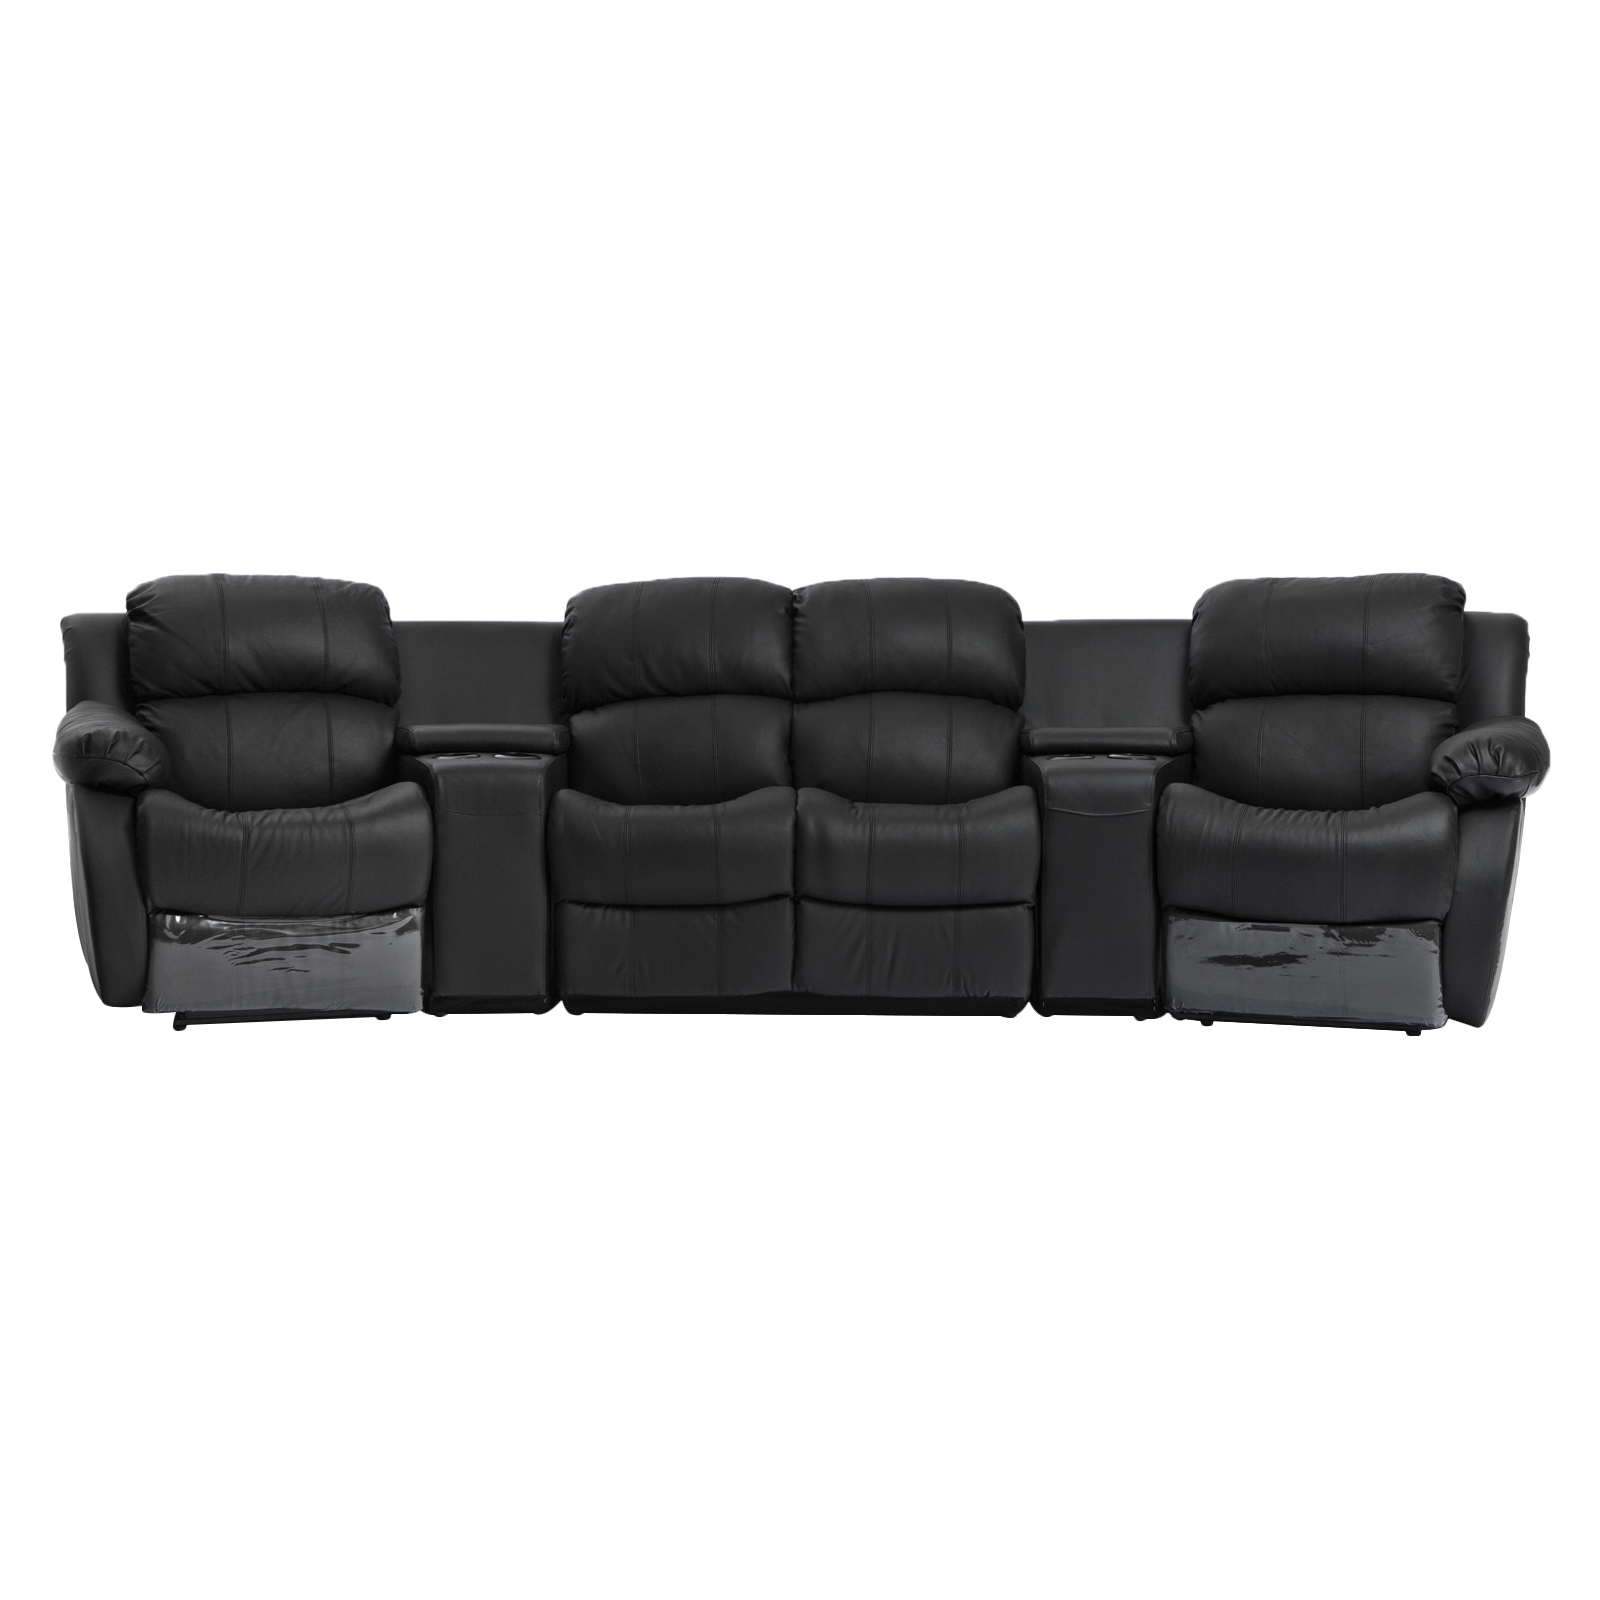 Nikki Leather 4 Seater Home Theatre Recliner Sofa Lounge Suite